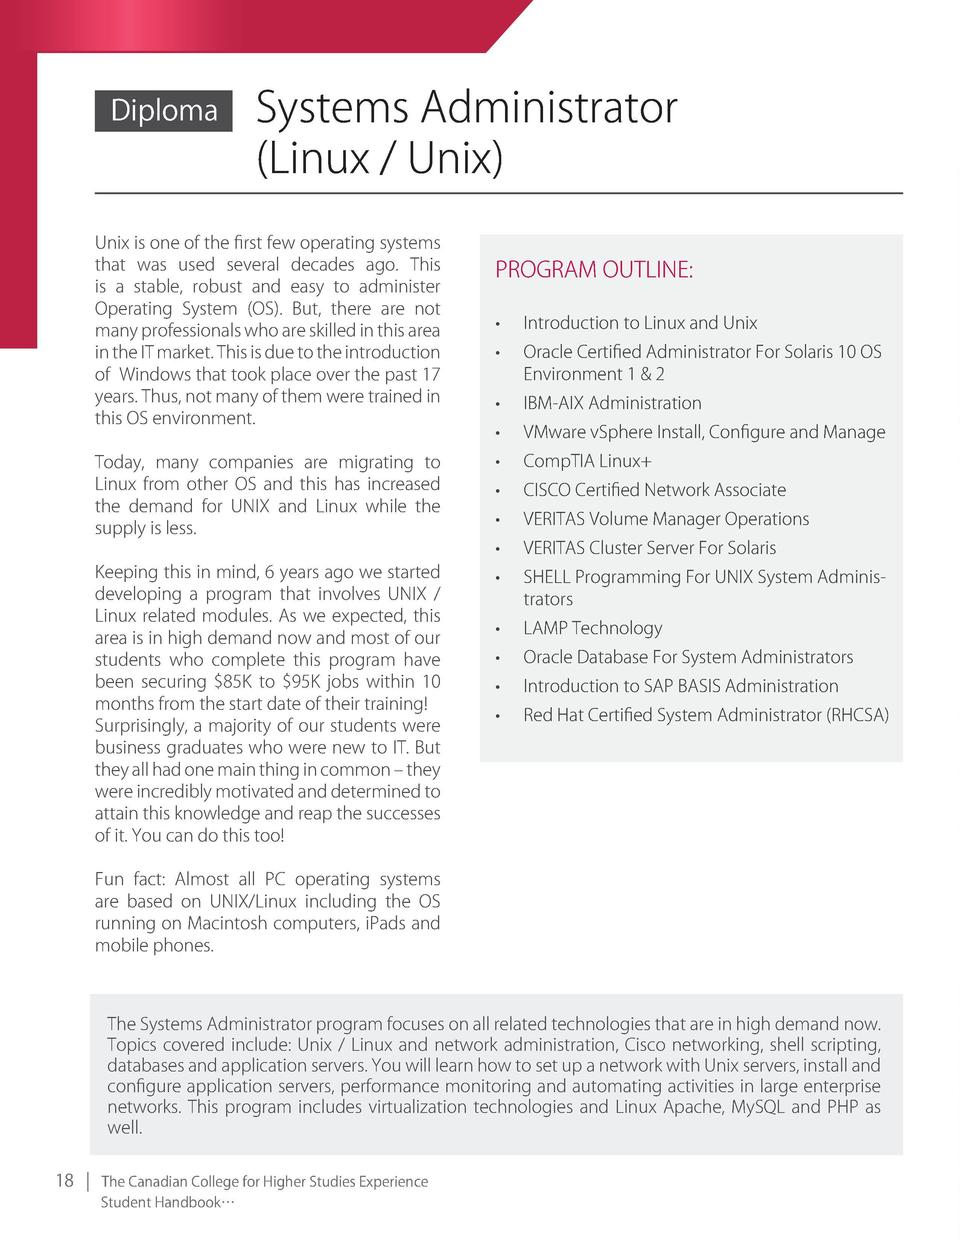 Diploma  Systems Administrator  linux   unix   unix is one of the first few operating systems that was used several decade...